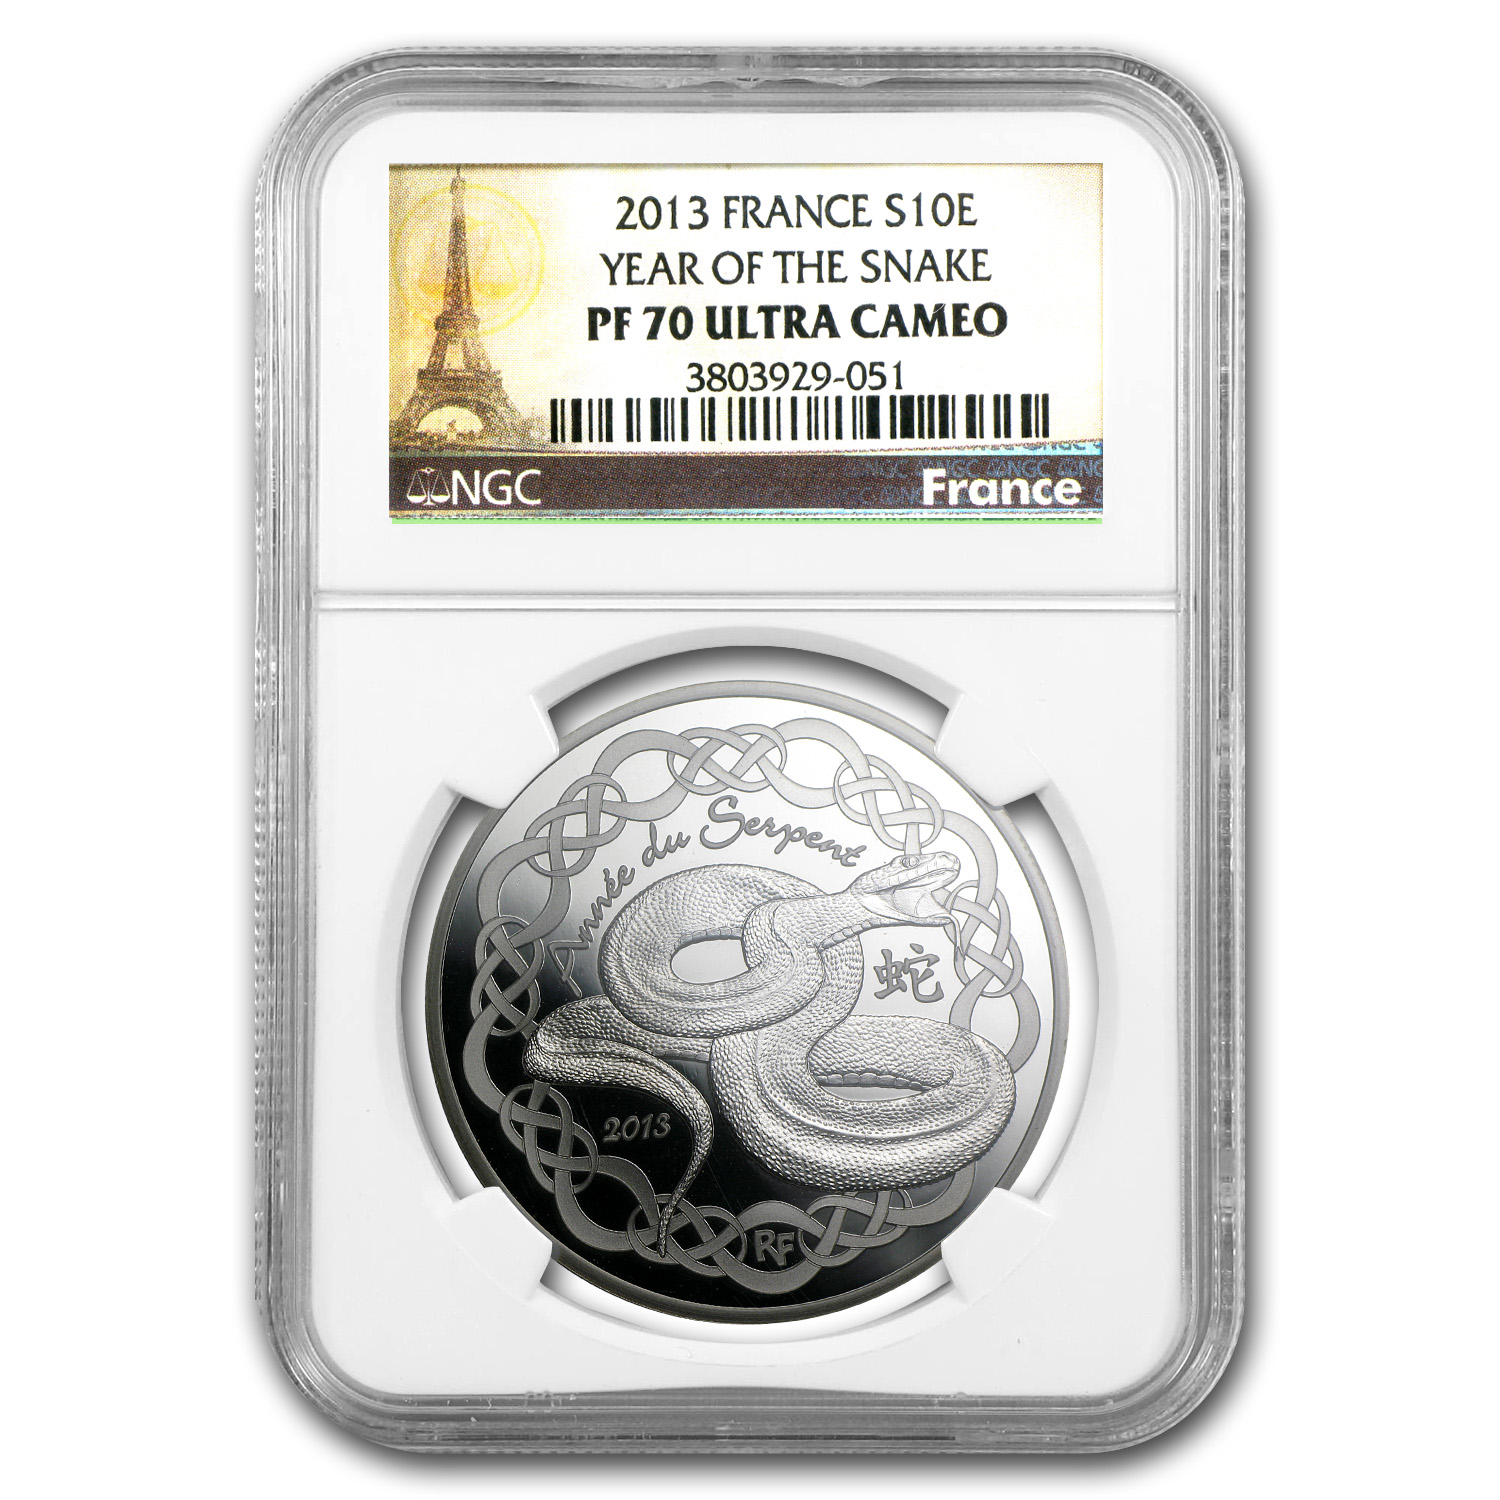 2013 France Silver €10 Year of the Snake PF-70 NGC